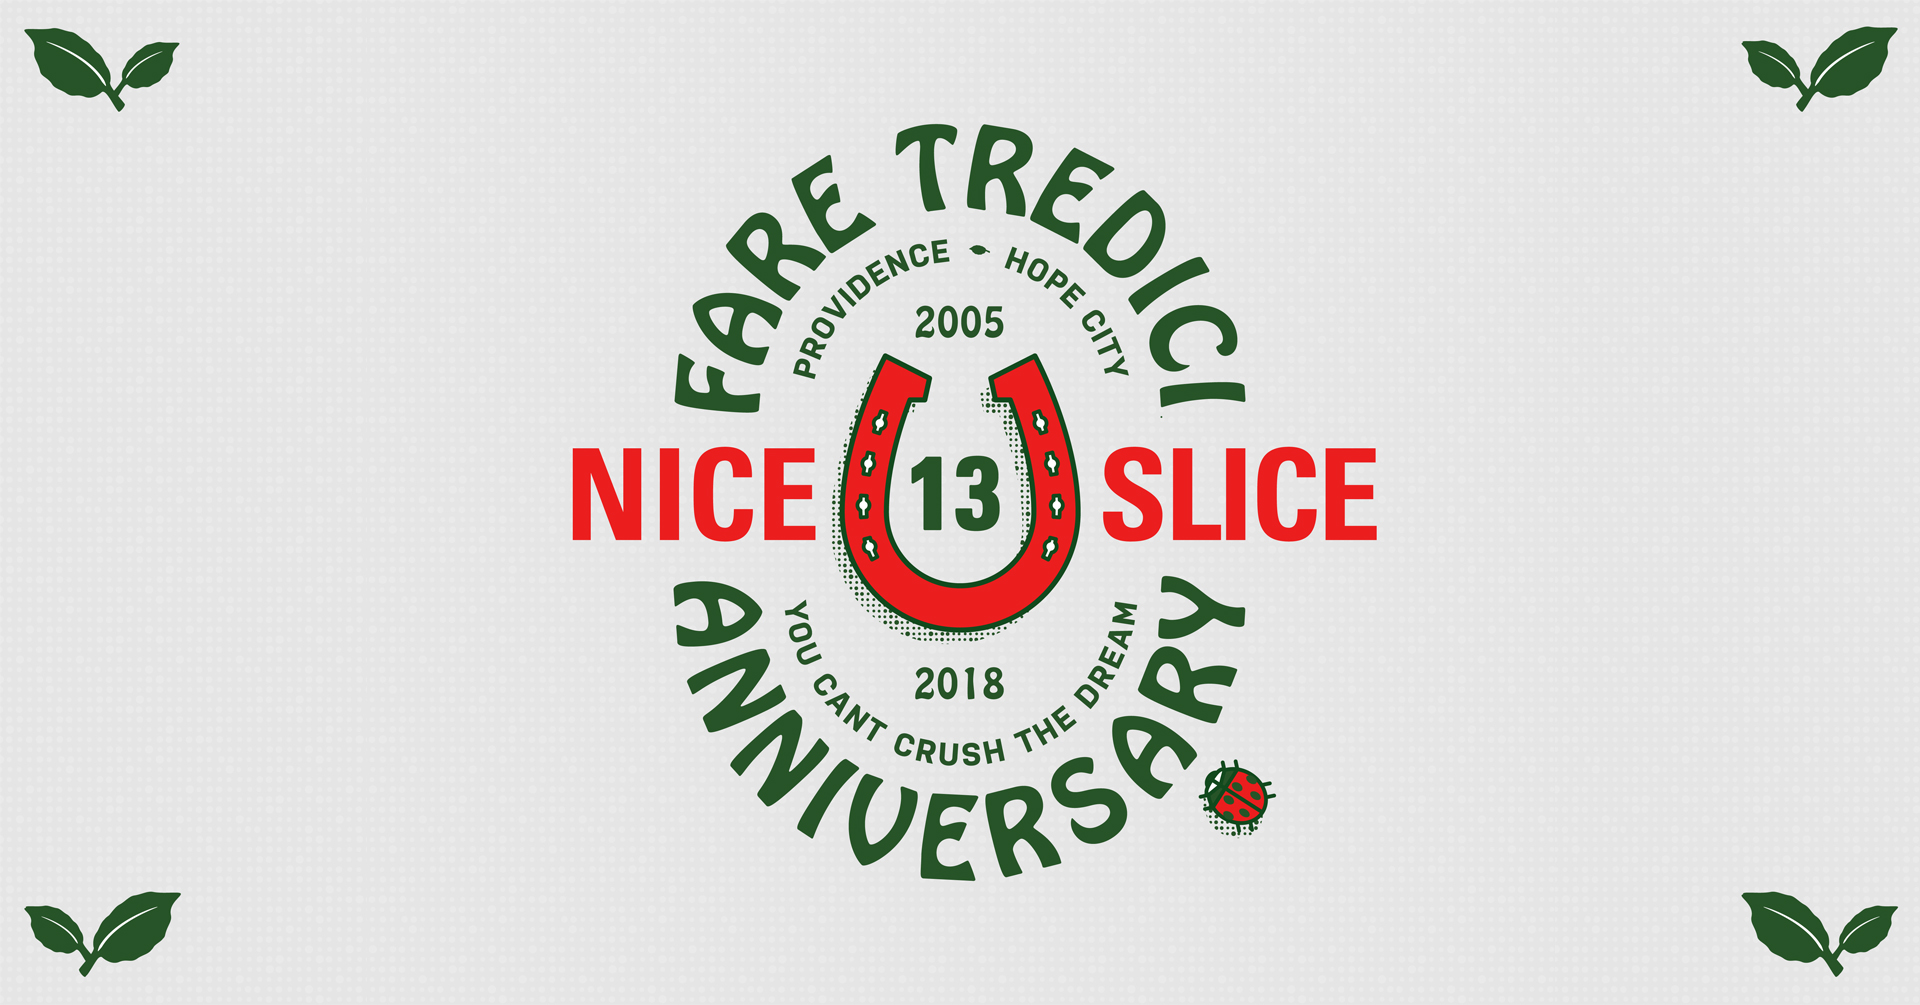 niceslice 13anniv fb event1.0